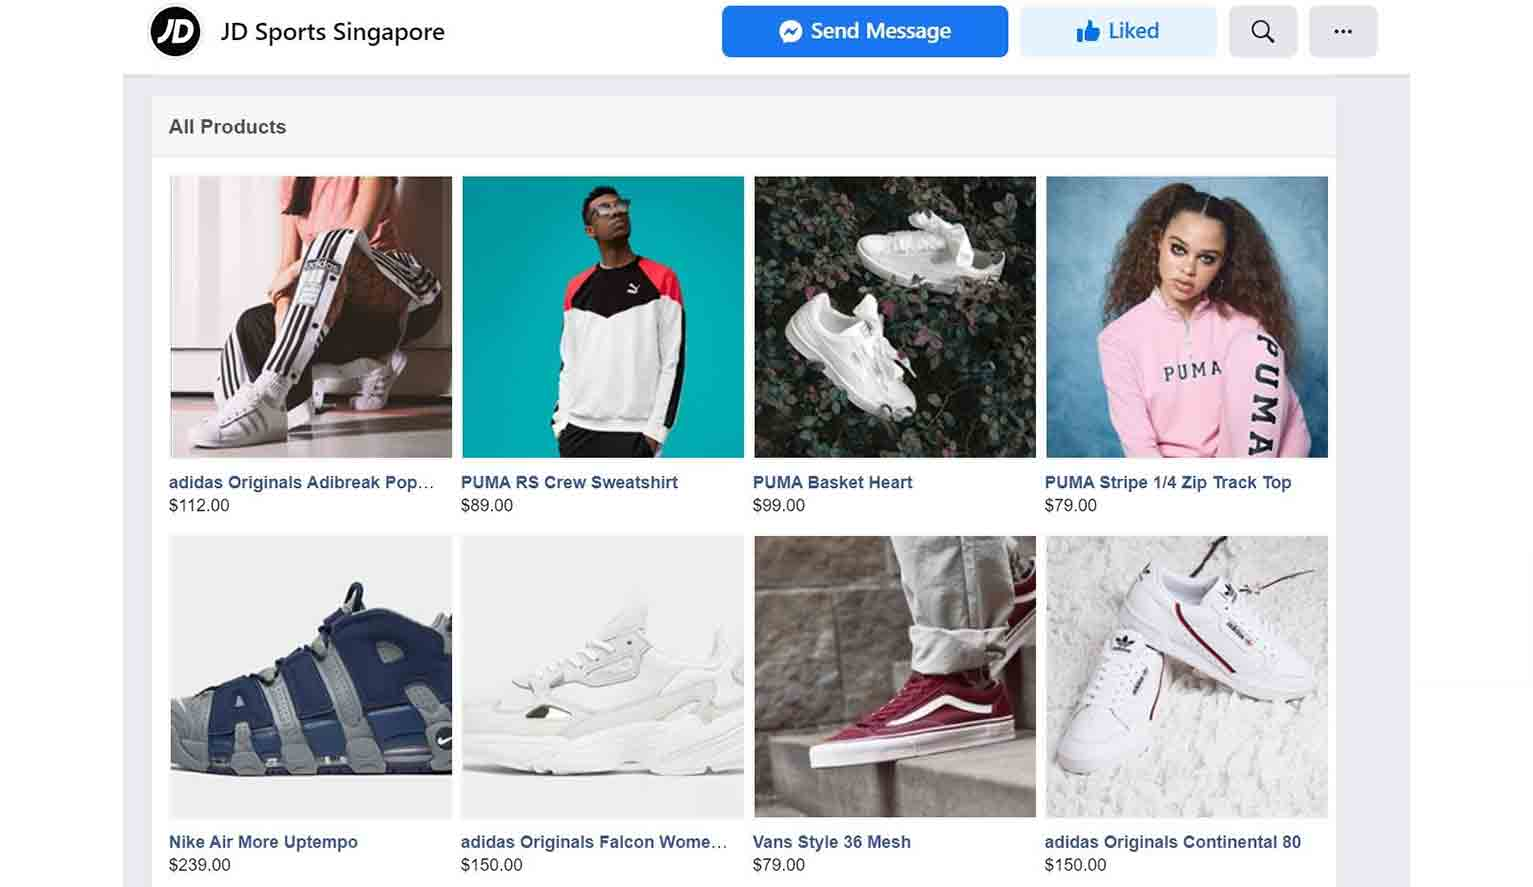 This is the shop page of JD Sports Singapore.